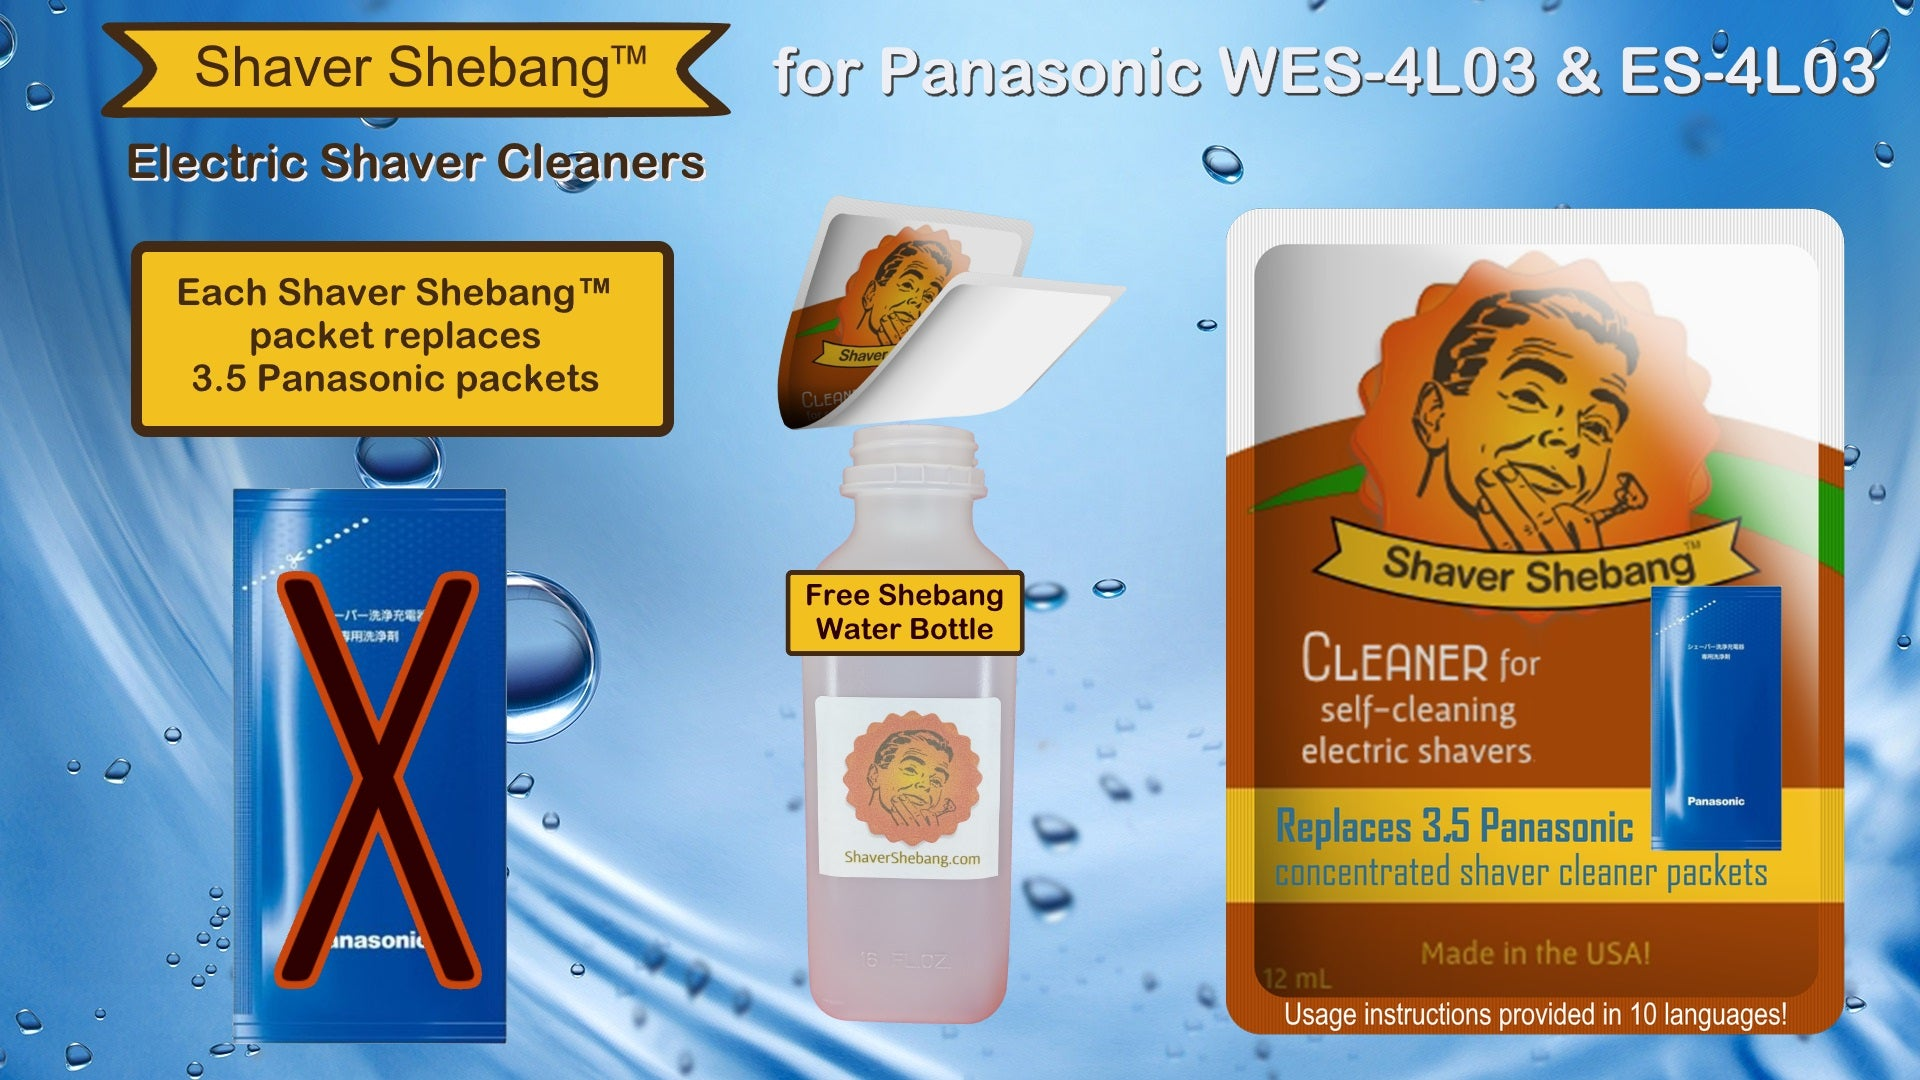 Shaver Shebang for Panasonic WES-4L03 and ES-4L03 concentrate